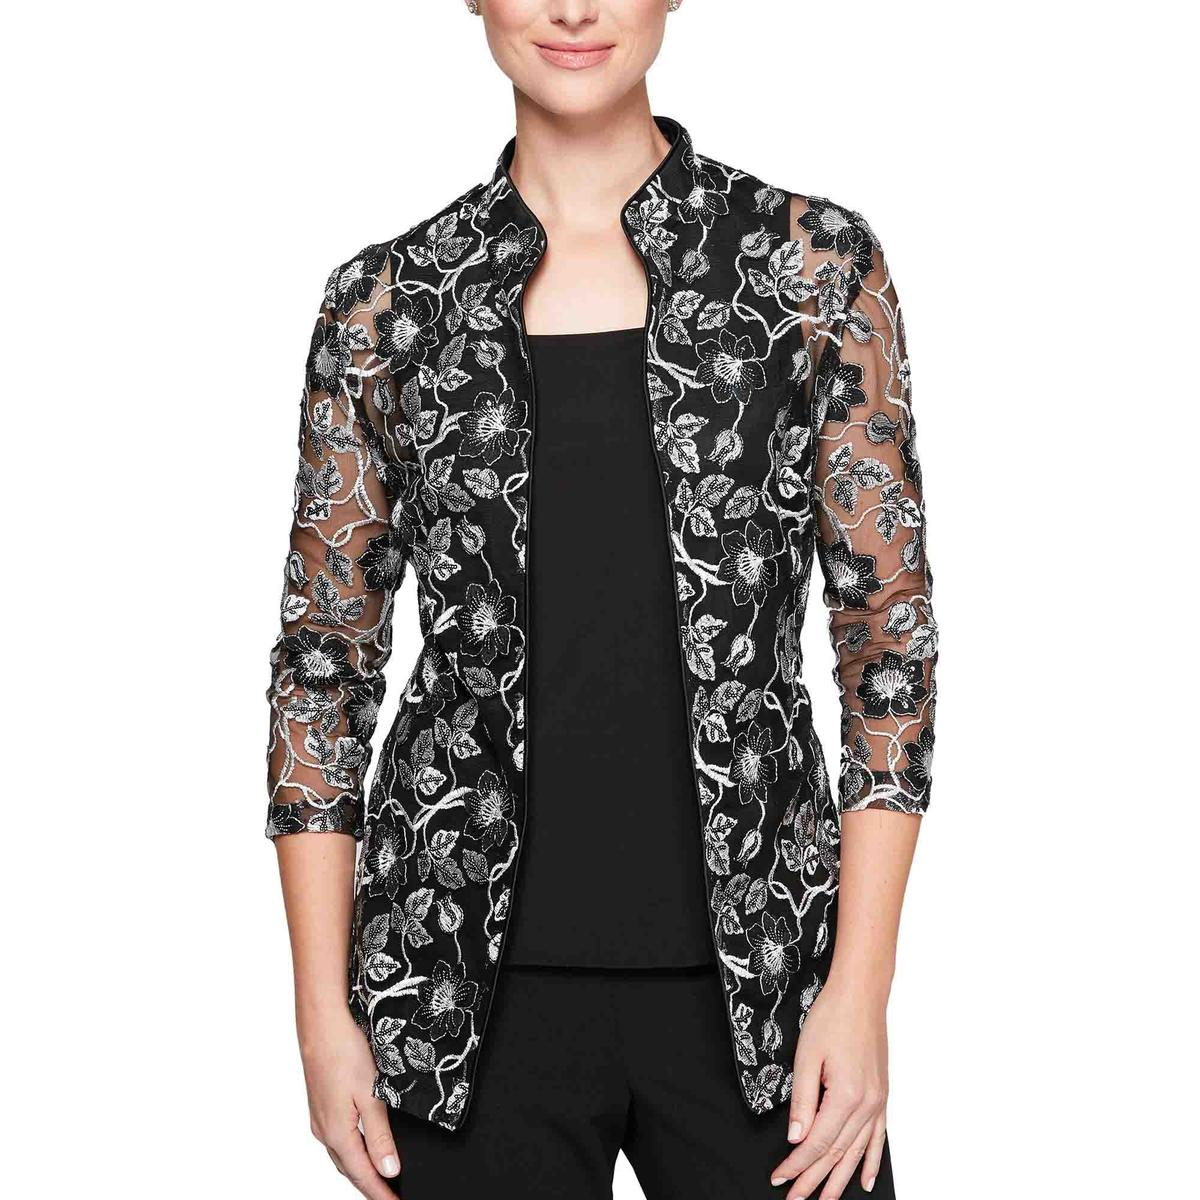 ALEX APPAREL GROUP INC - Floral Embroidered Jacket & Camisole Set